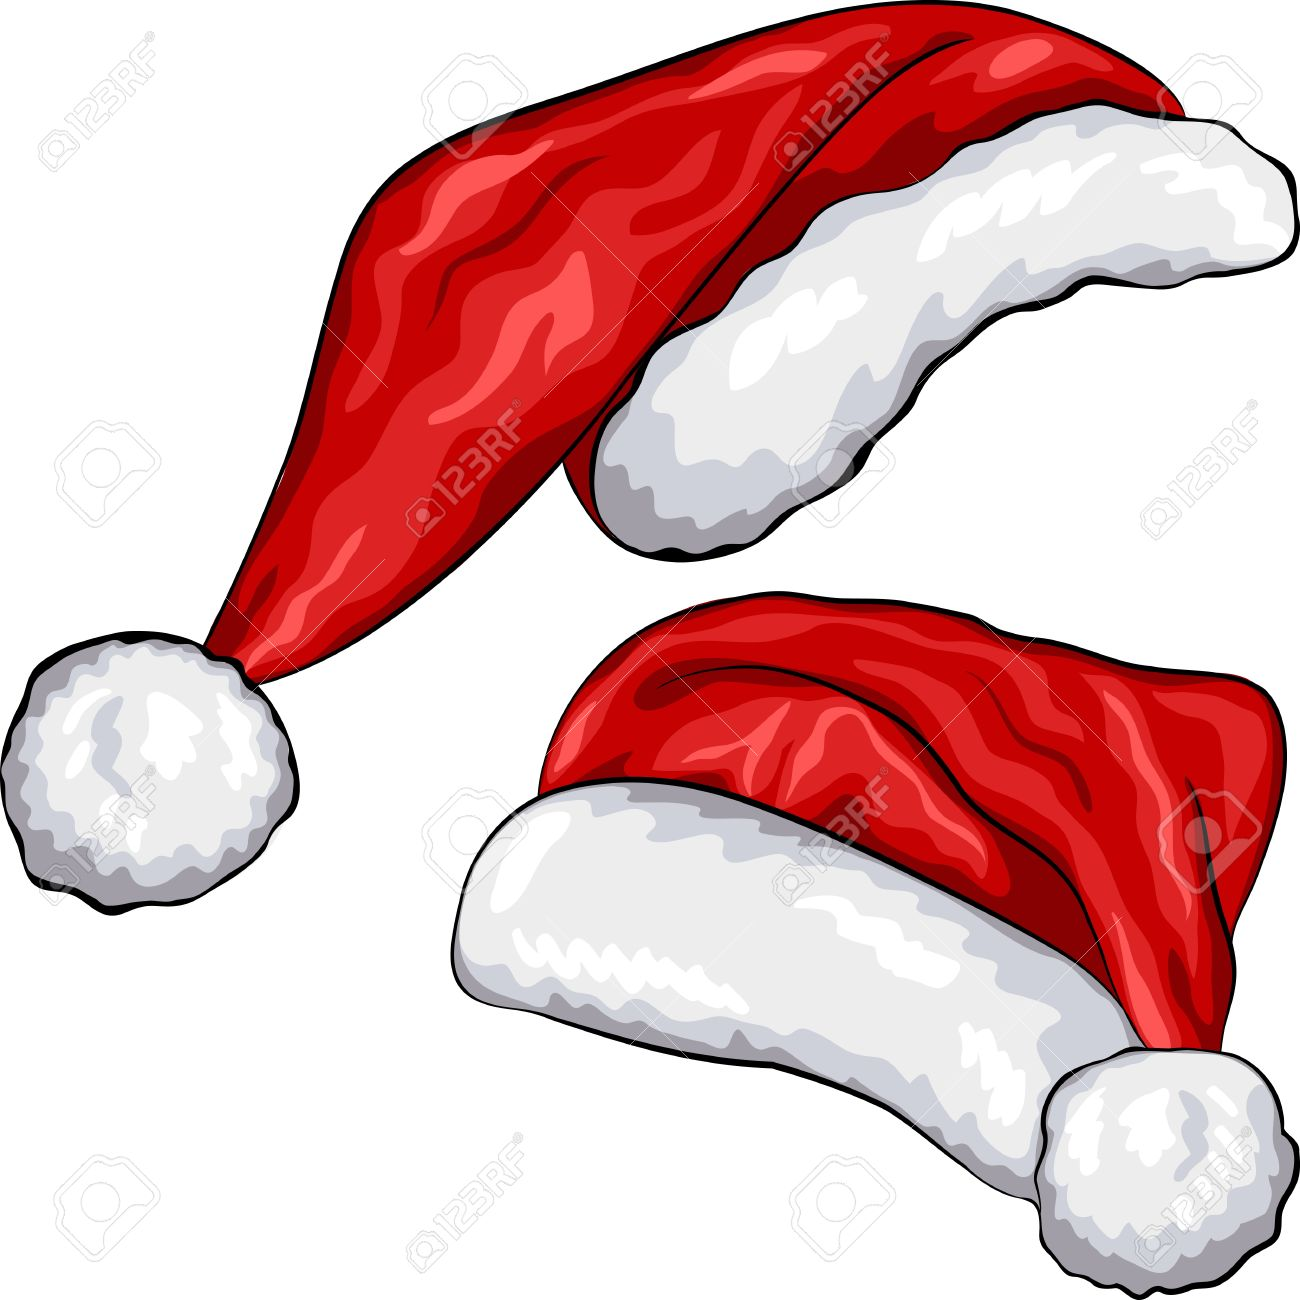 red Christmas Santa Claus hats isolated on white background - 16510884